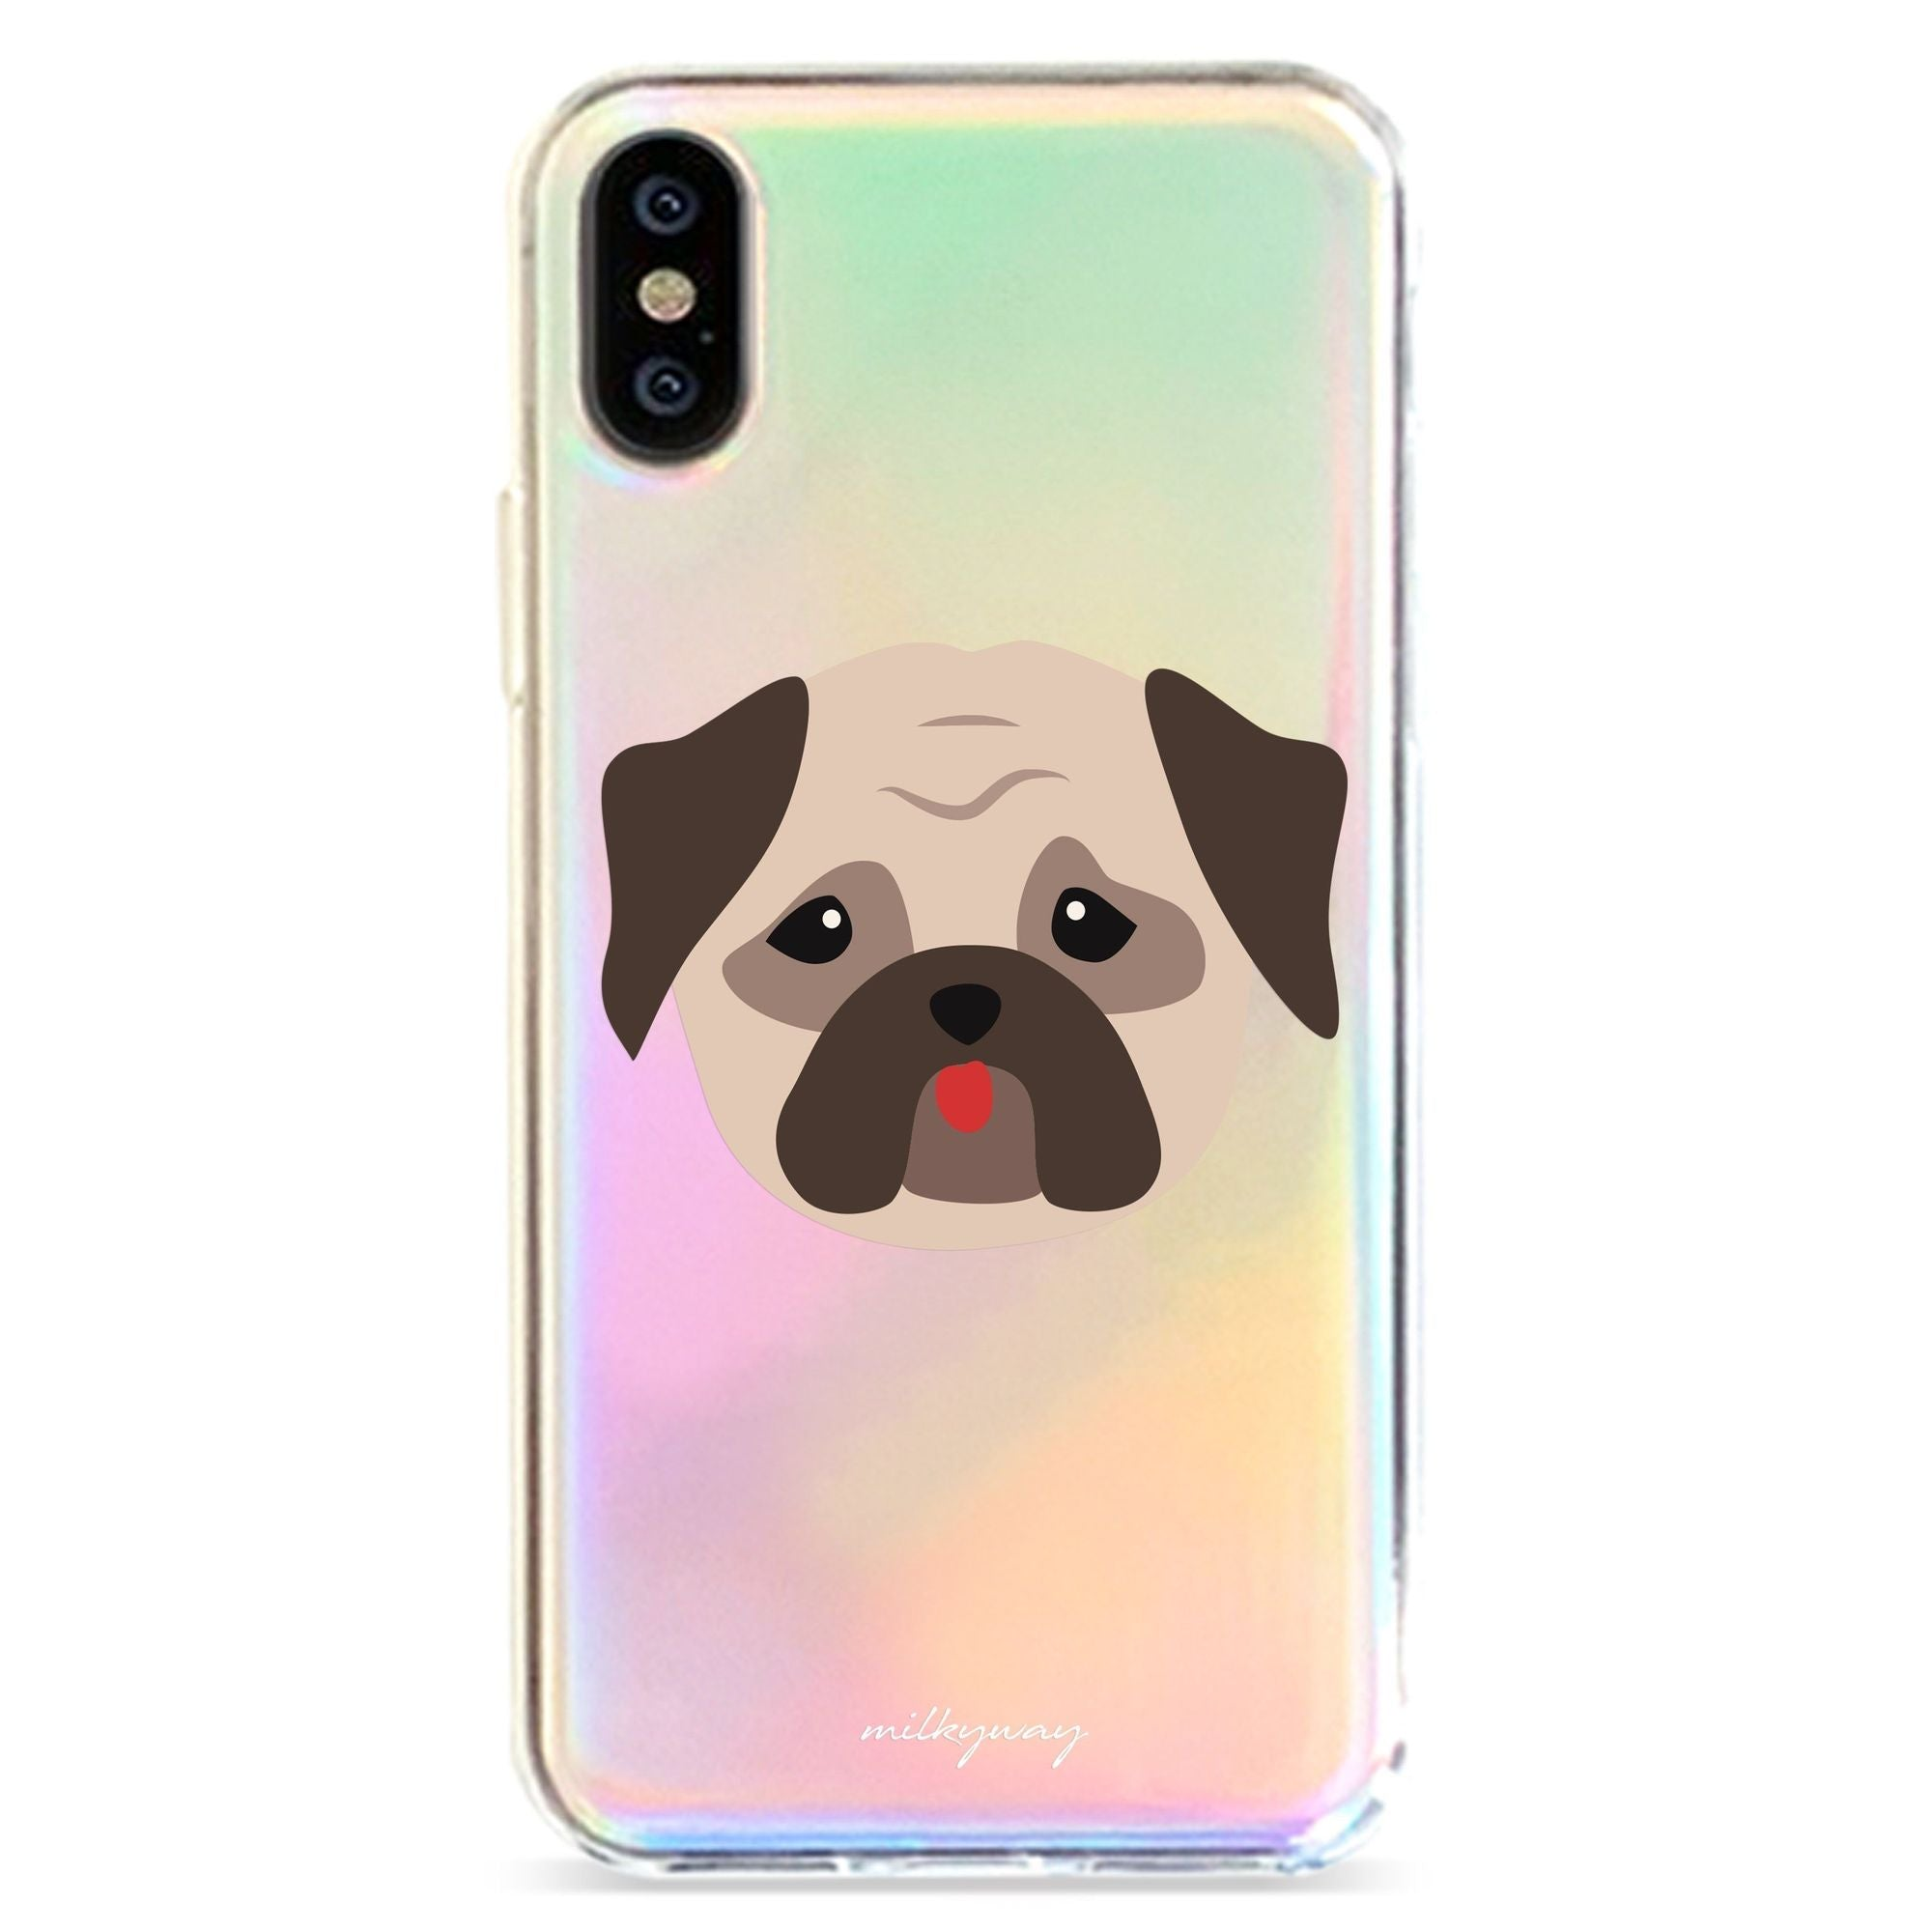 PUG - HOLOGRAPHIC IPHONE CASE